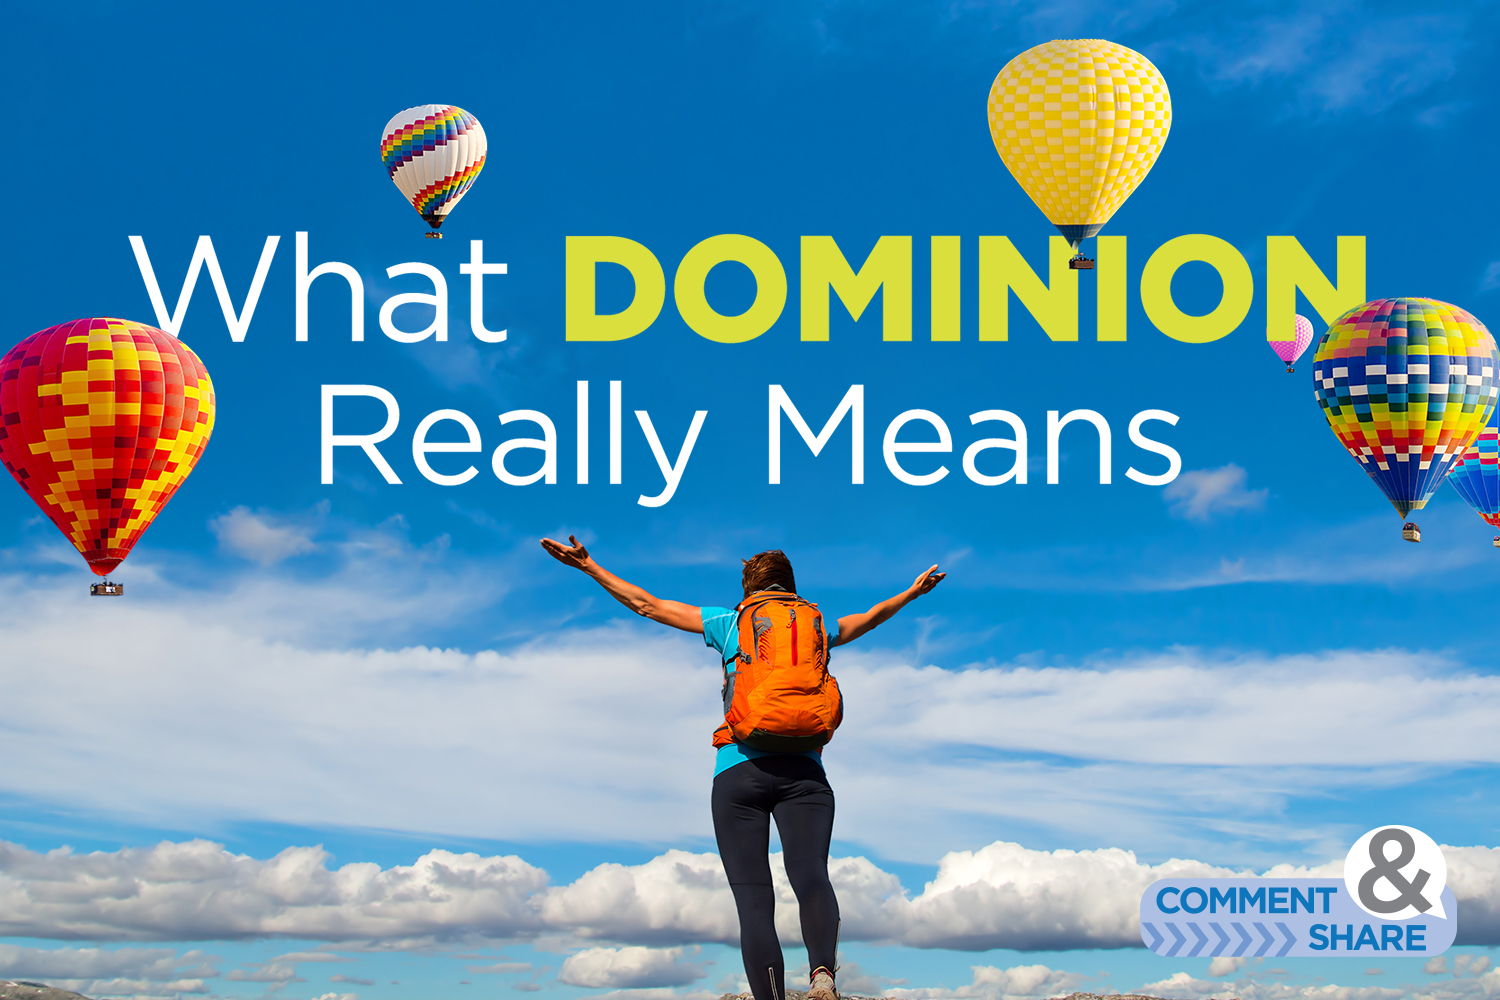 What Dominion Really Means